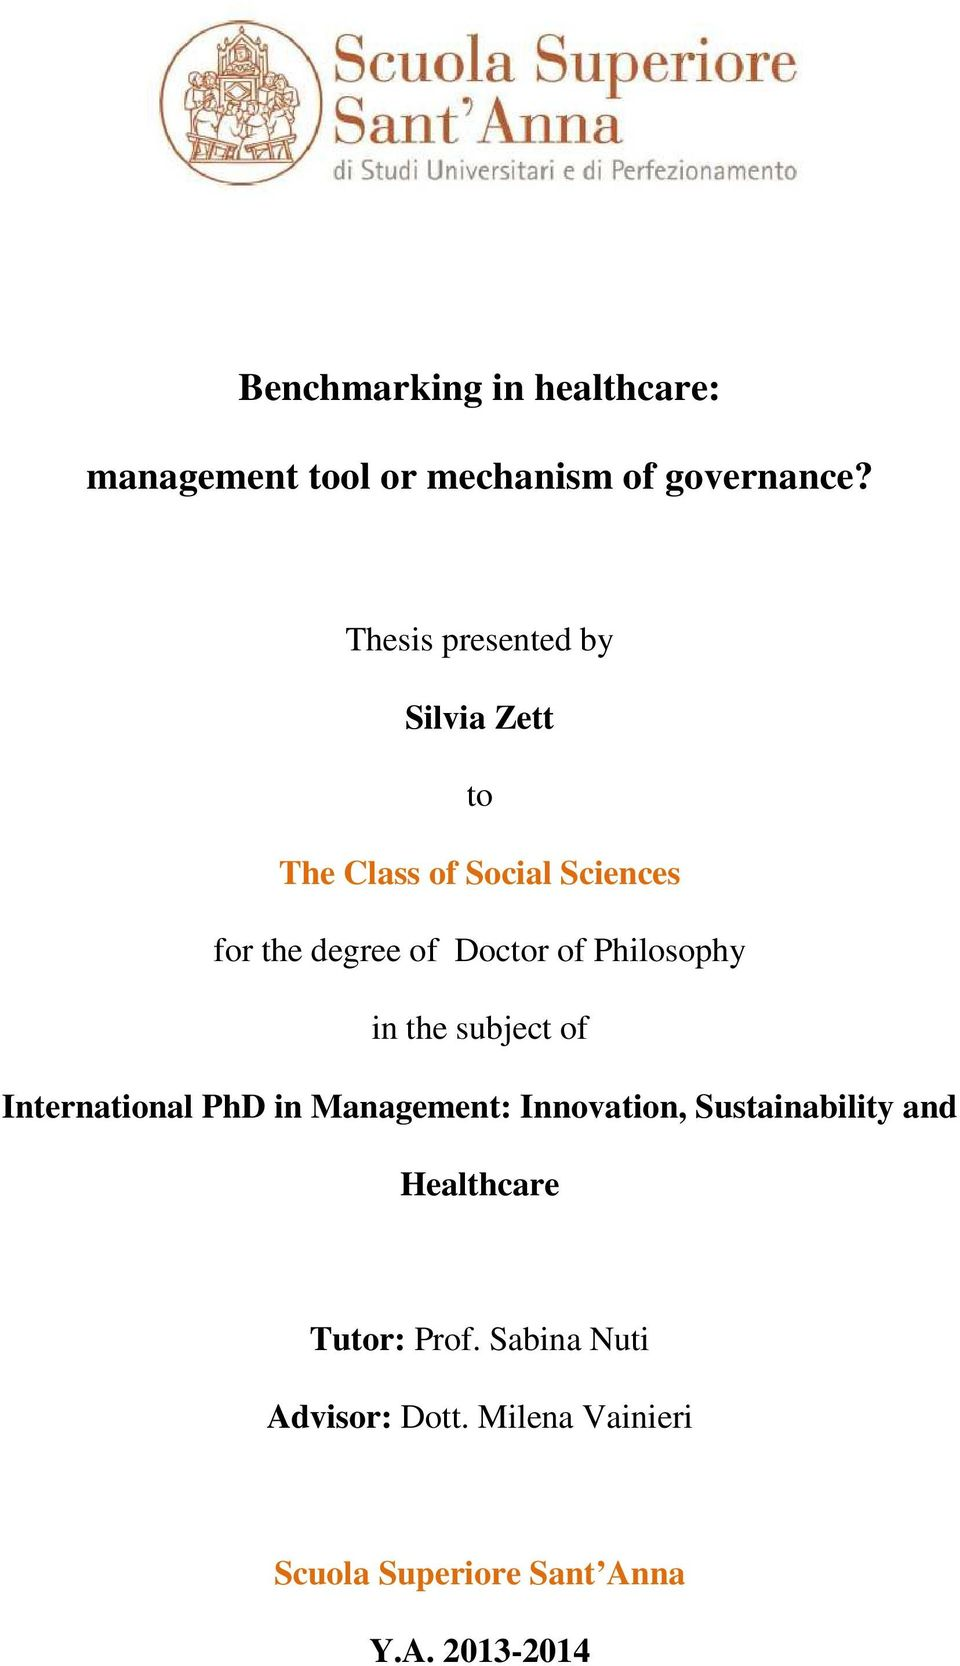 Philosophy in the subject of International PhD in Management: Innovation, Sustainability